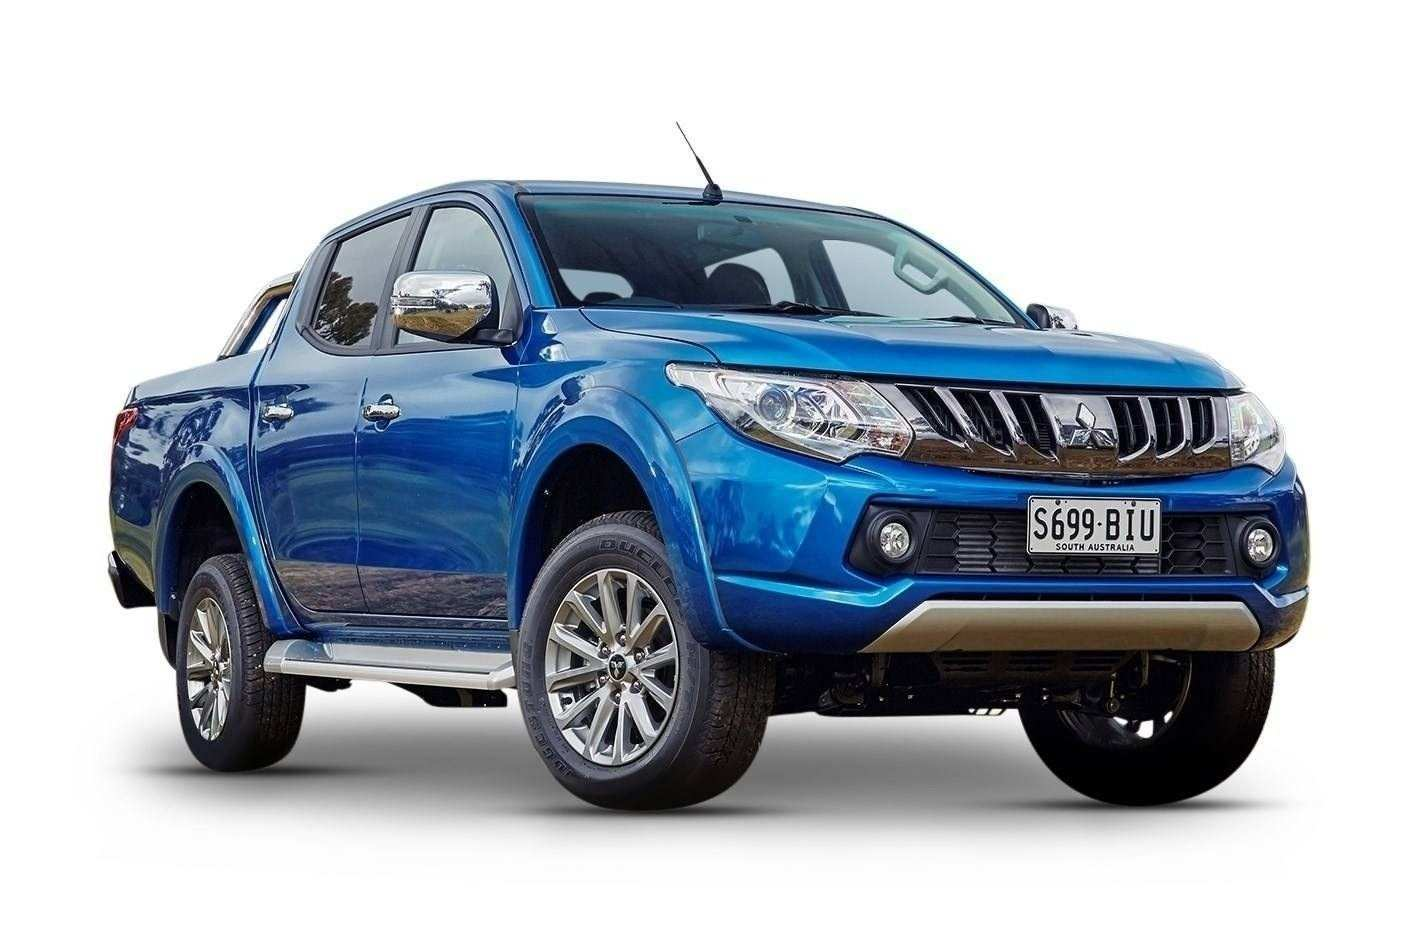 44 The 2019 Mitsubishi Triton Perfect Outdoor New Review